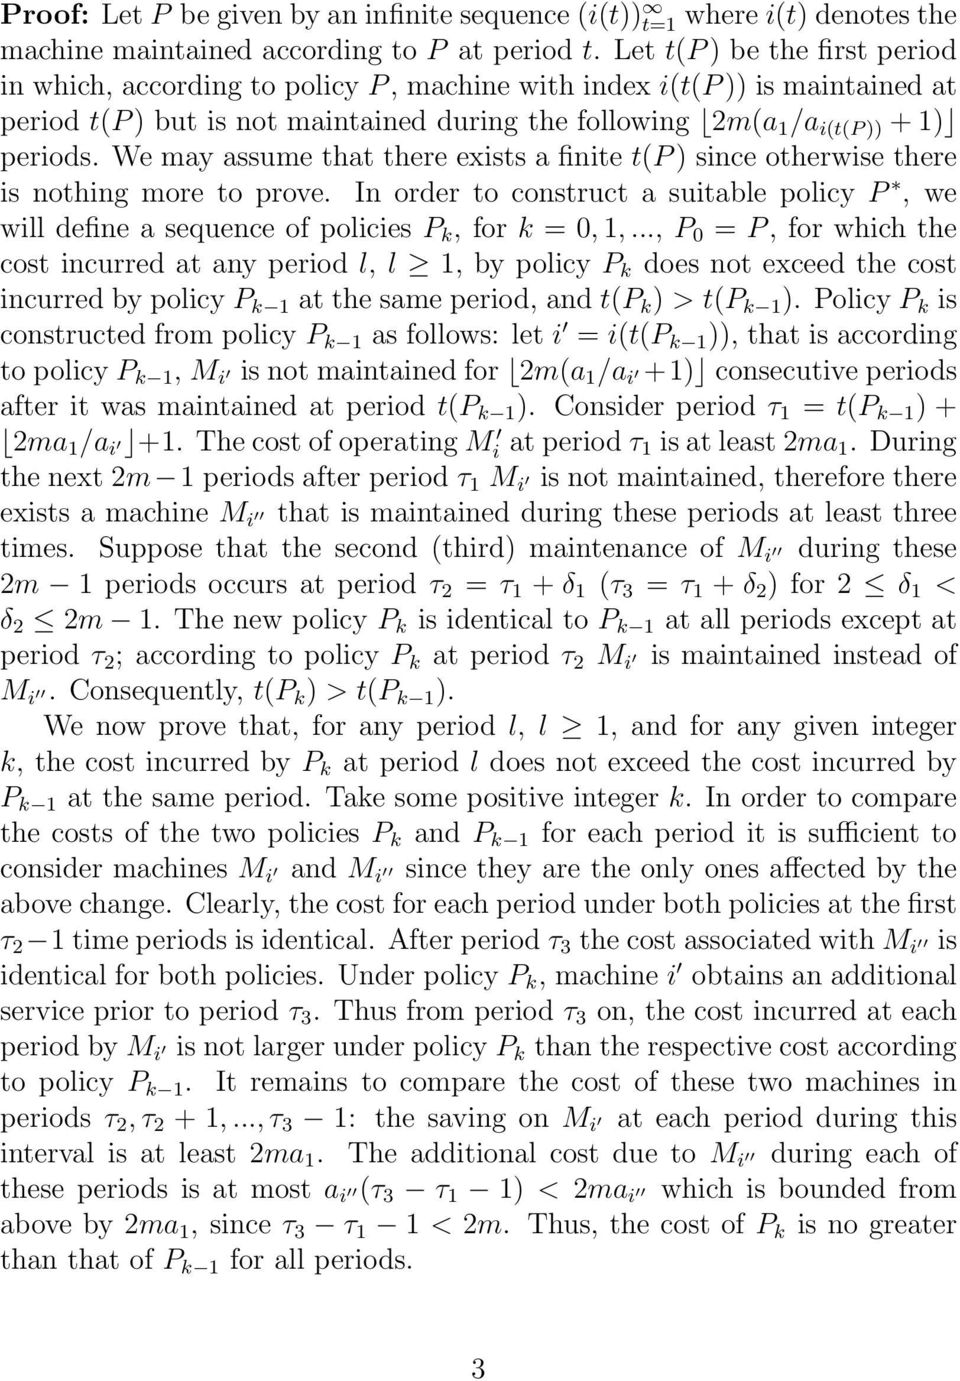 We may assume that there exists a finite t(p ) since otherwise there is nothing more to prove. In order to construct a suitable policy P, we will define a sequence of policies P k, for k = 0, 1,.